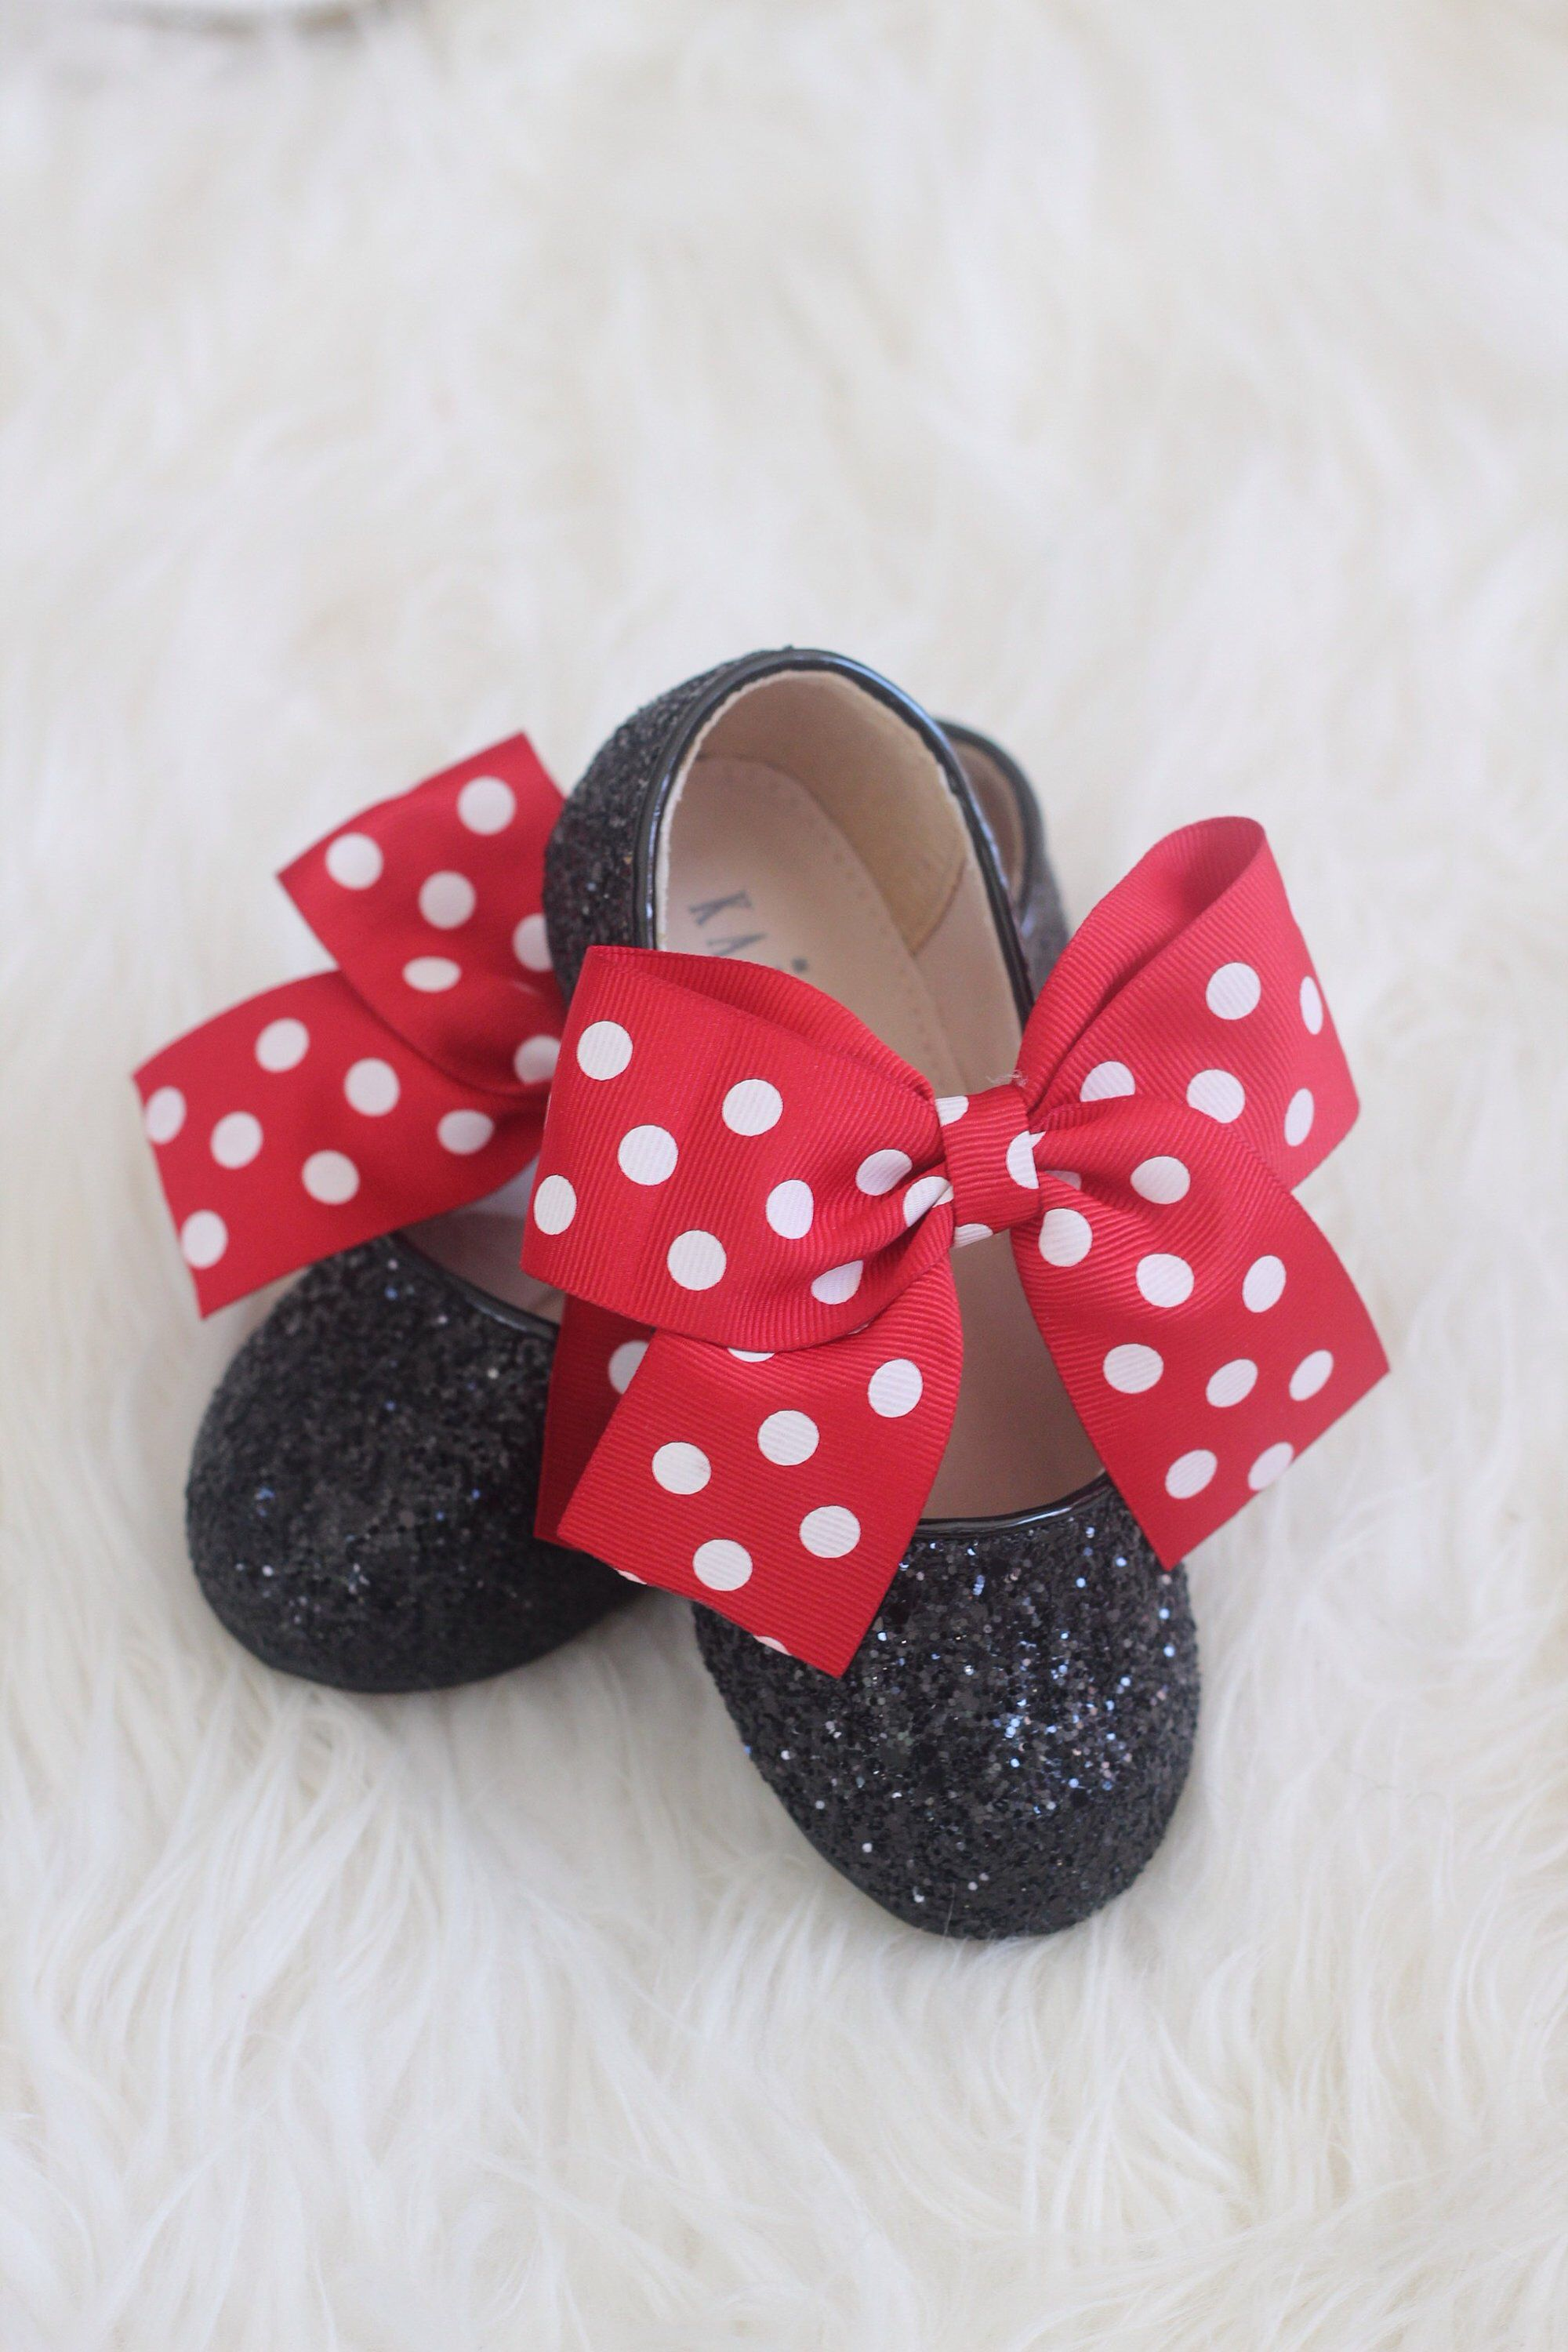 b0c992d4884c5 MICKEY MOUSE Shoes- Black Rock Glitter mary-jane with Red Polka Dot ribbon  bow